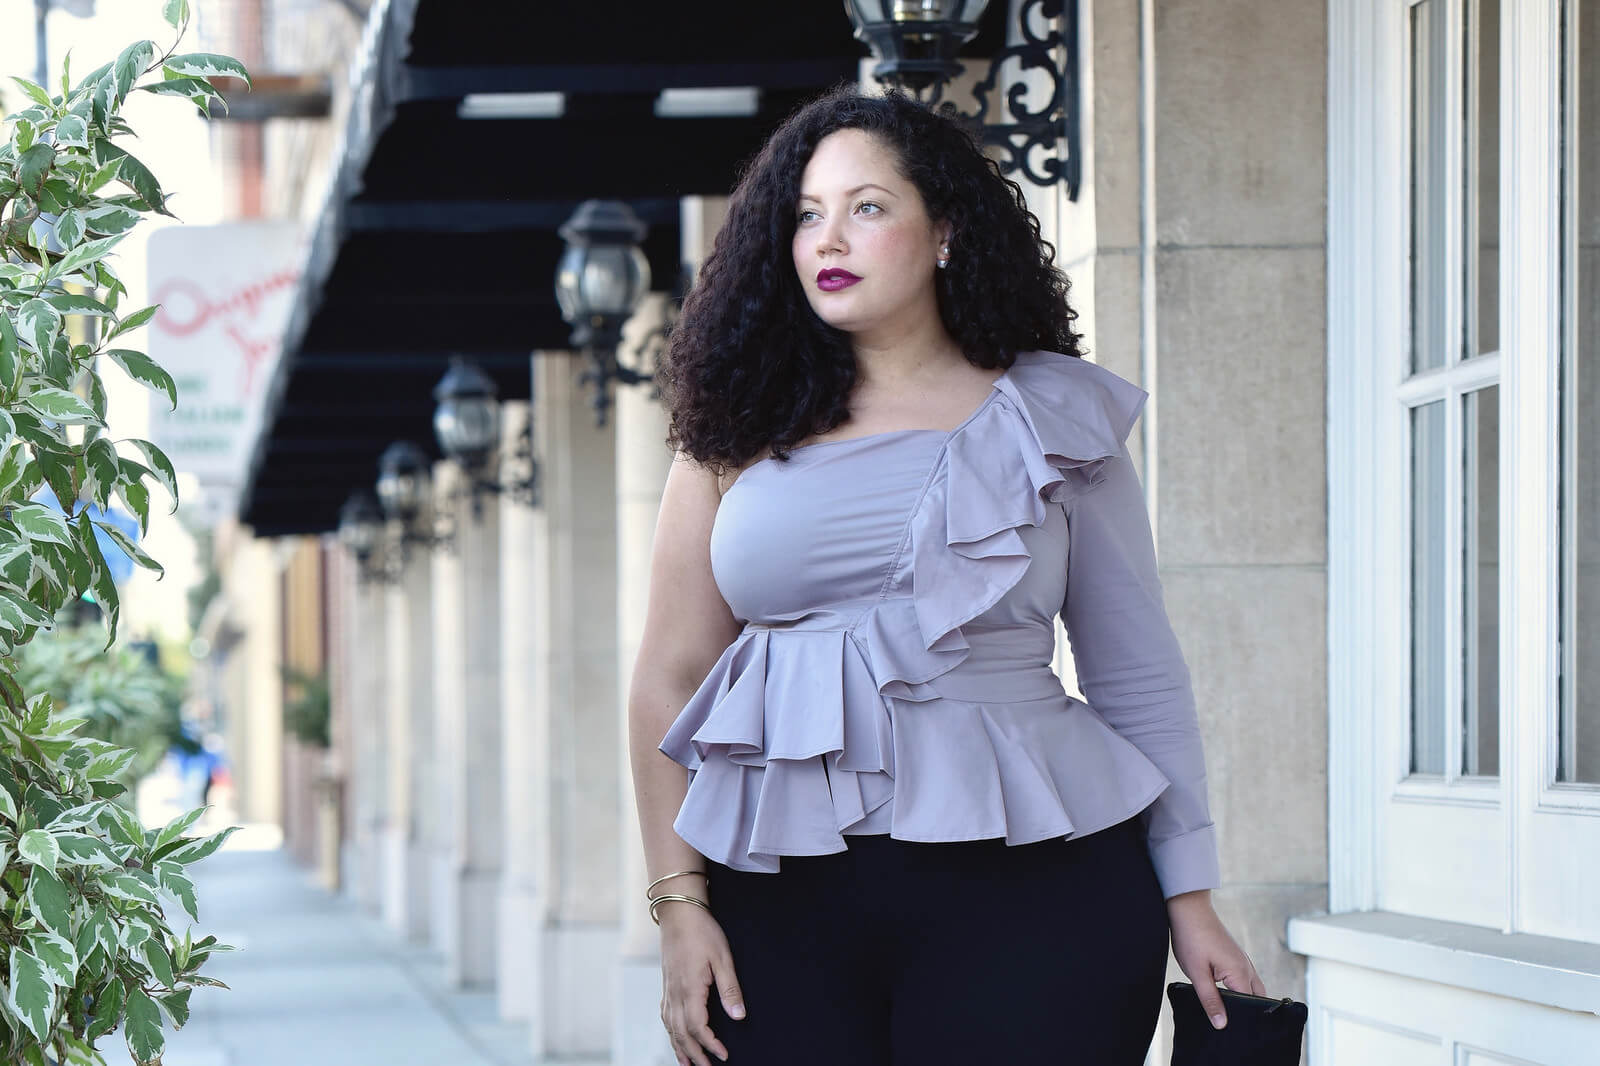 How To Dress Up Pants For The Holidays via @GirlWithCurves  #leggings #ruffles #formal